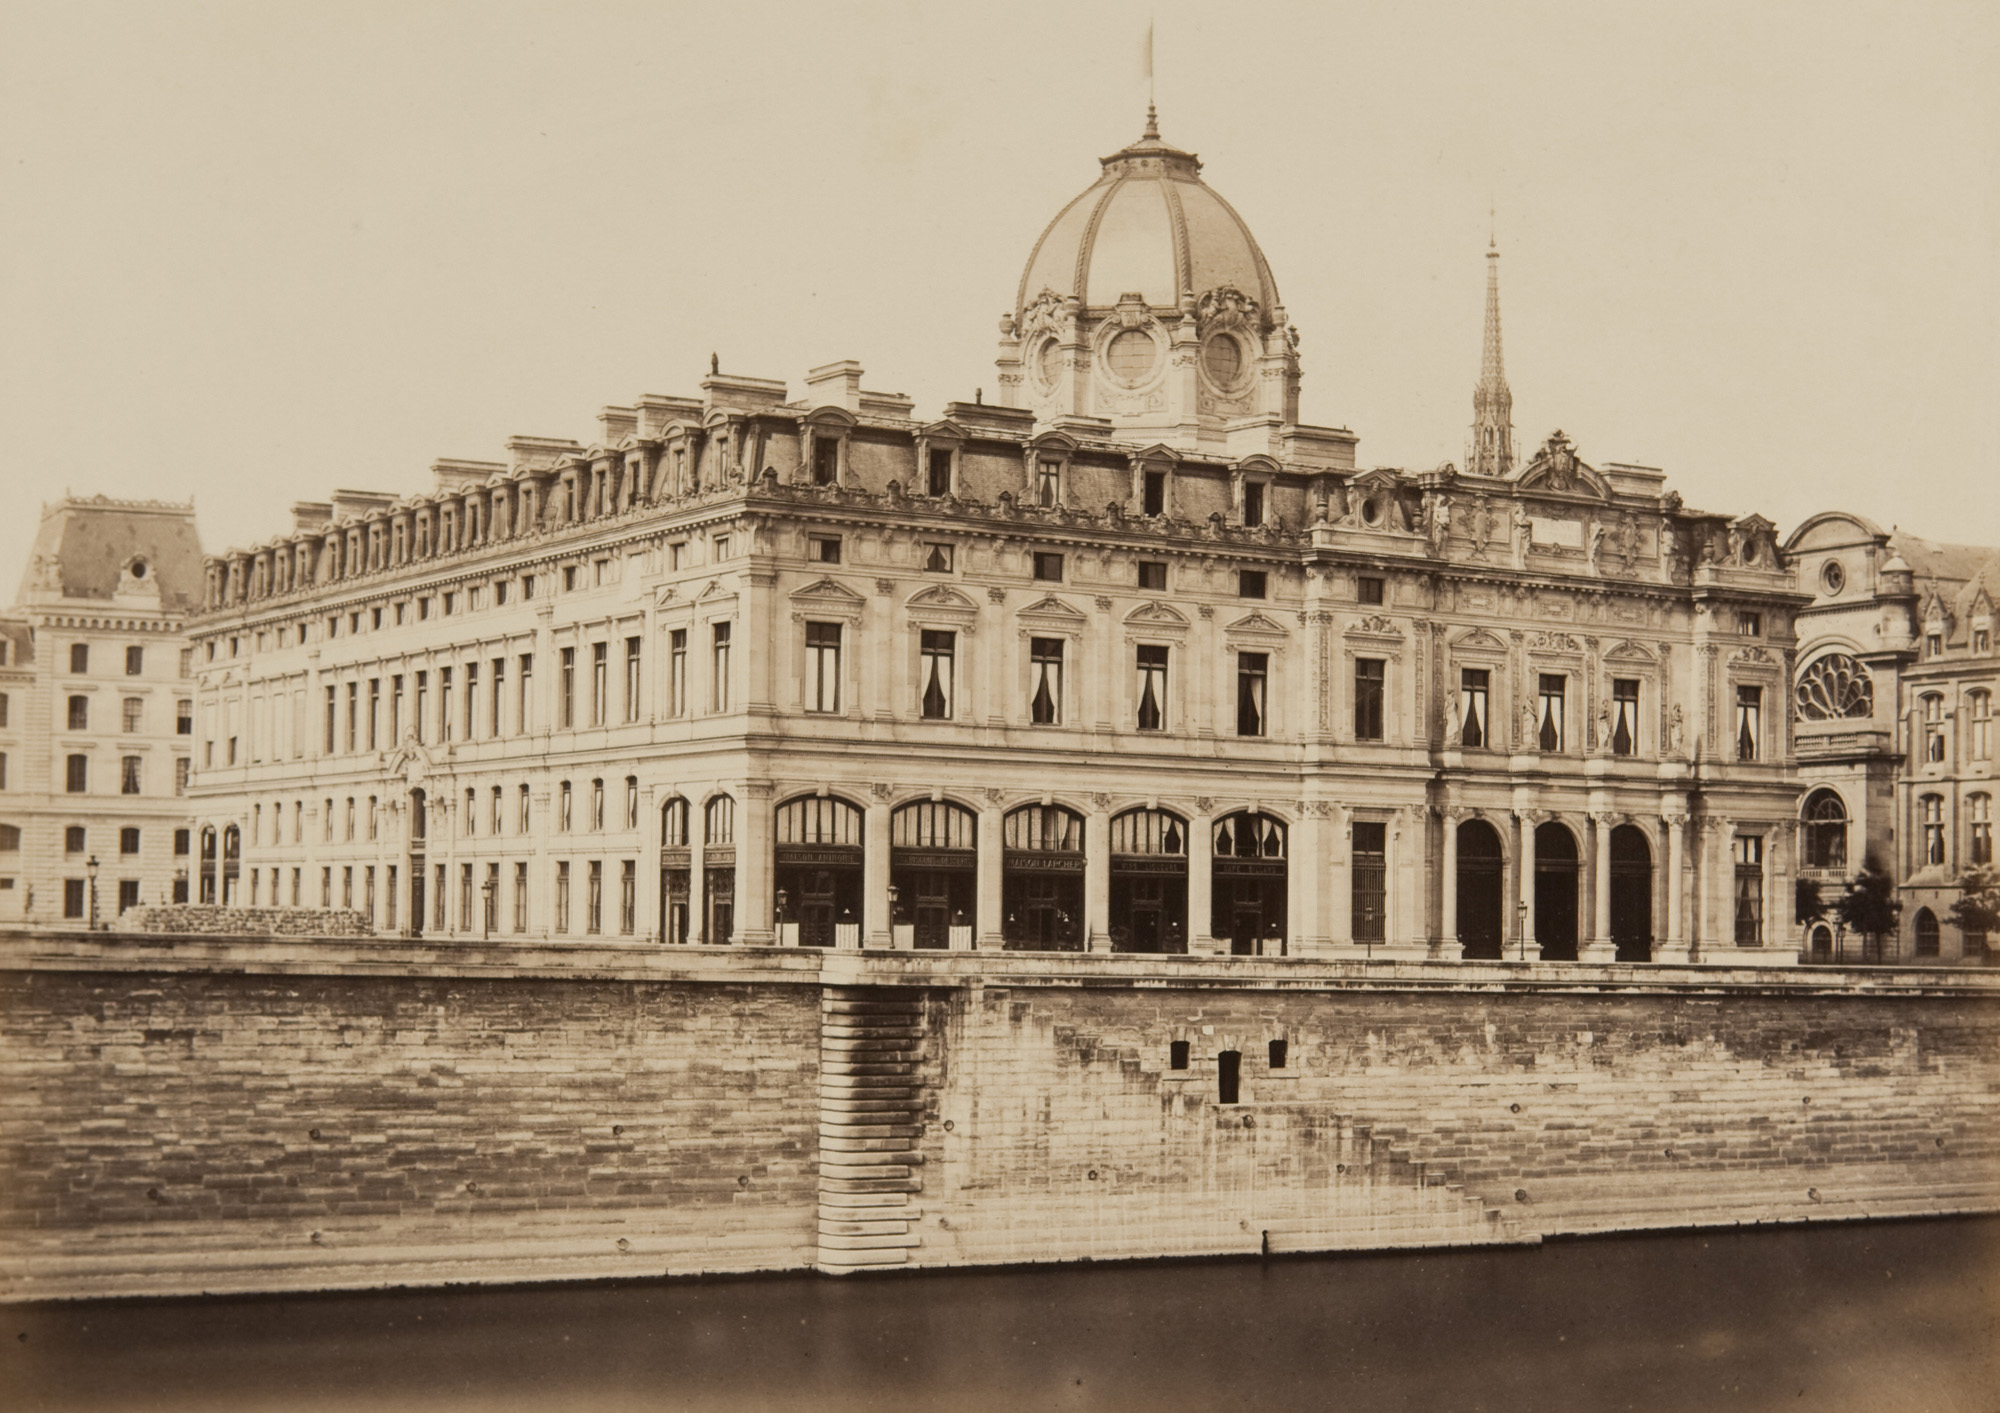 File:Vues de Paris en Photographie 1858.jpg